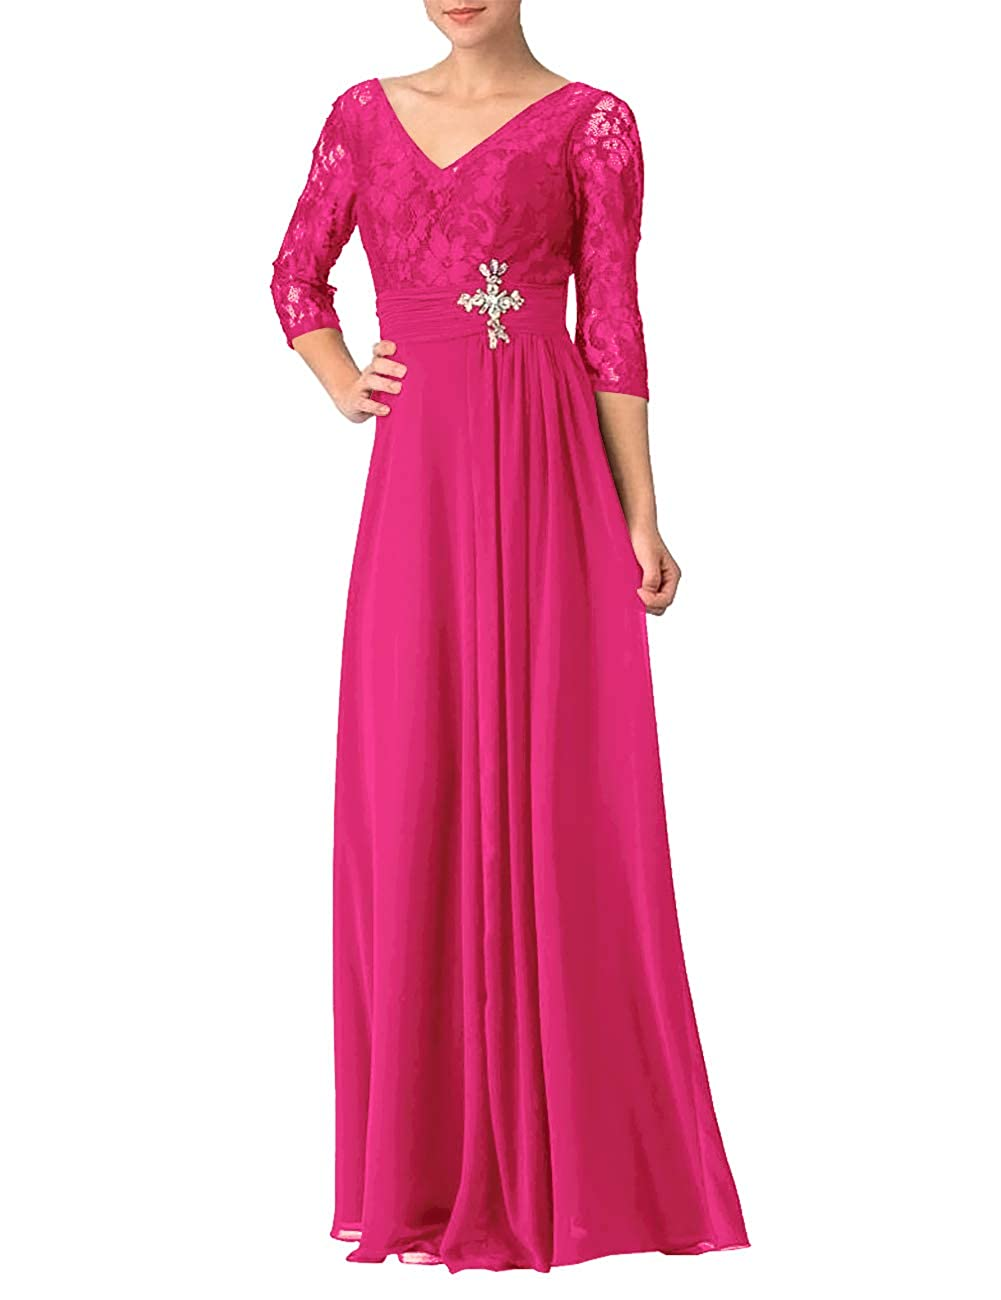 Hot Pink Evening Dresses V Neck Half Sleeve Lace Mother of The Bride Gowns